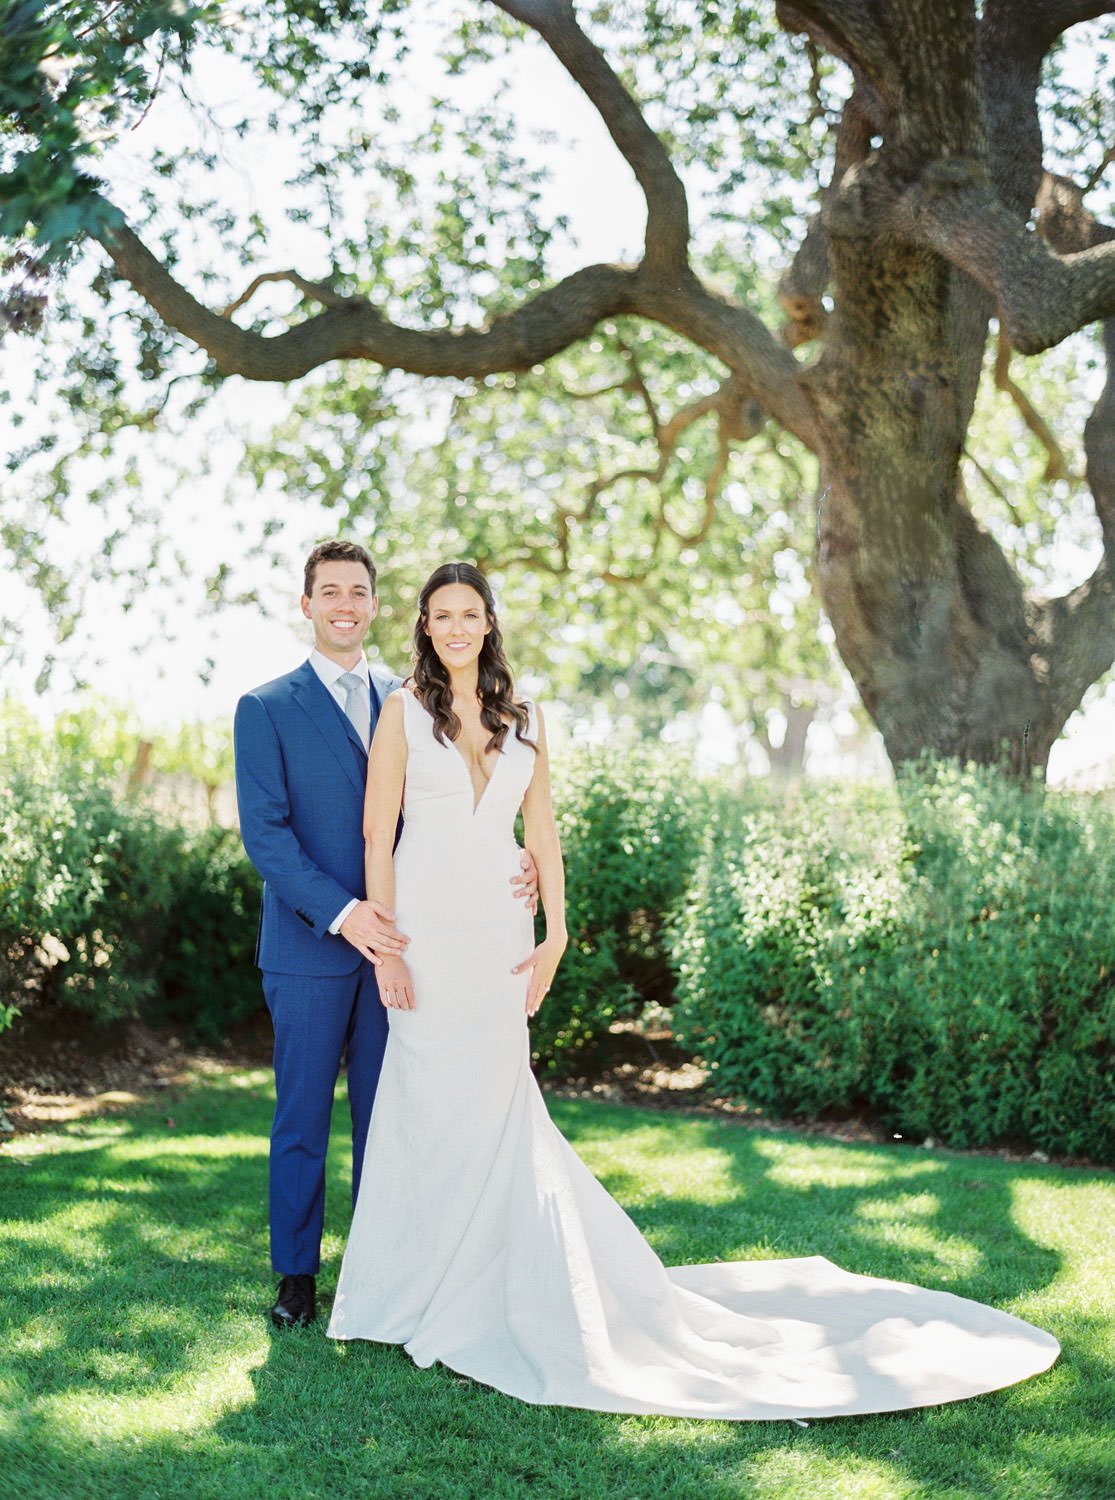 Bride and groom portrait captured on medium format film, Cavin Elizabeth Photography